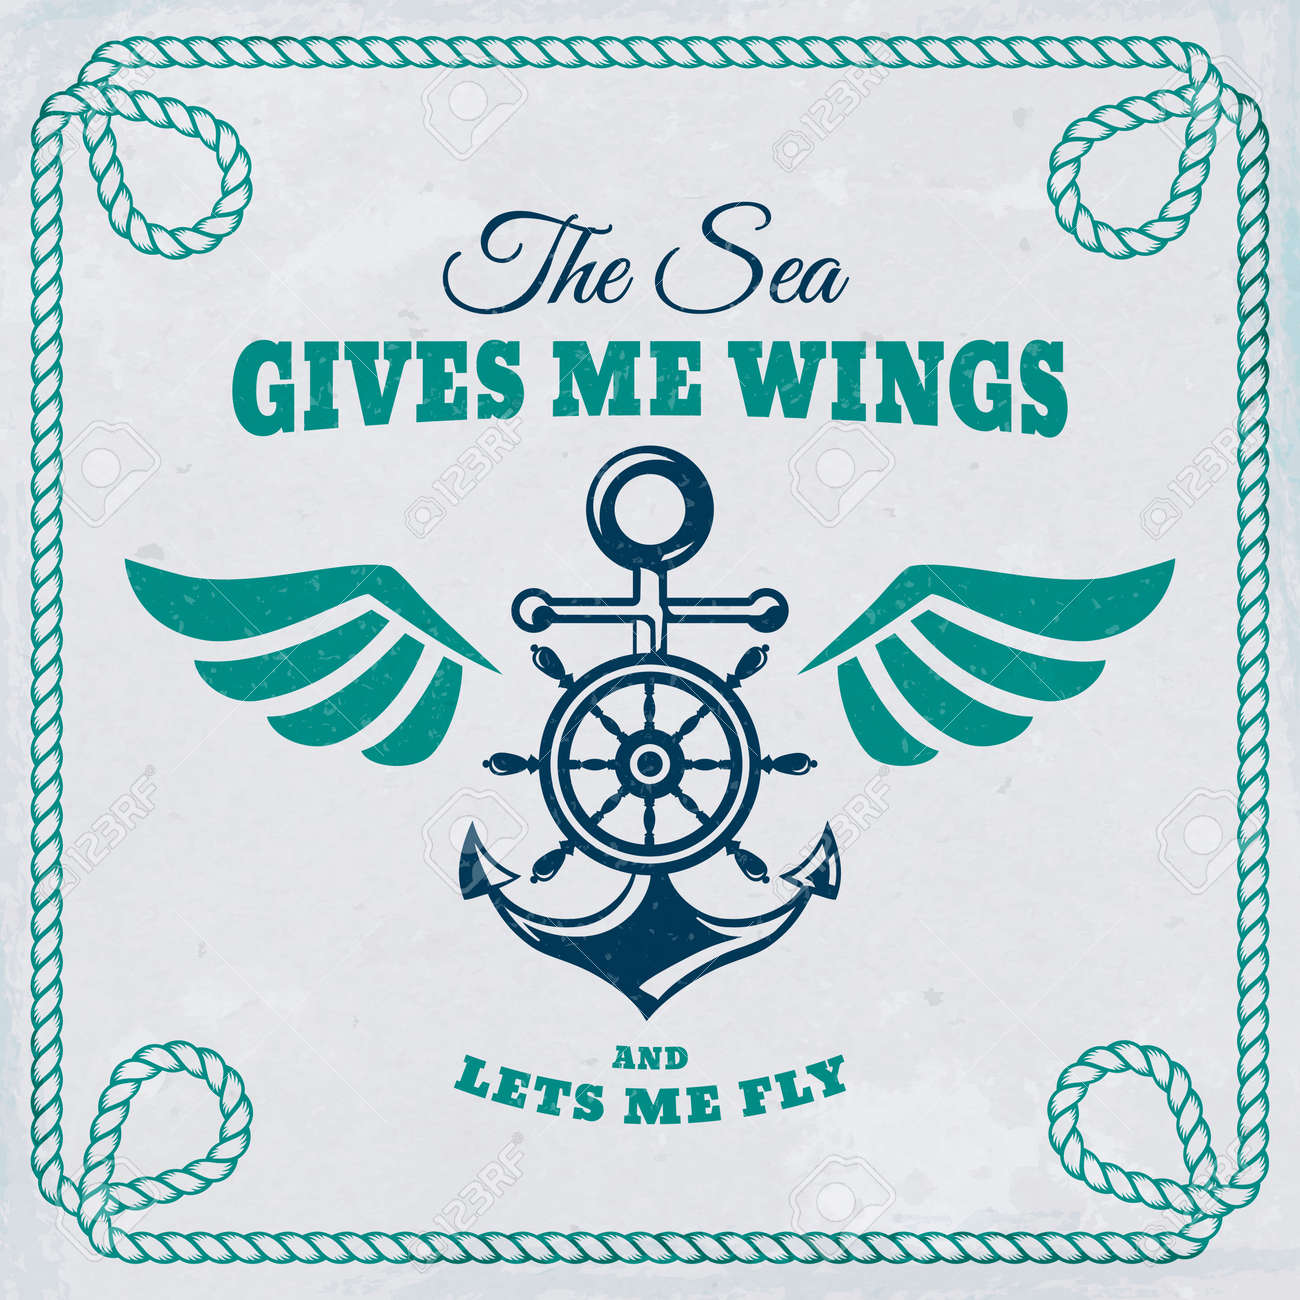 Vector emblem with anchor, steering wheel and wings. Nautical banner with vintage badge, inspirational quote and rope frame. Sea cruise, sailing travel or navigation themes. - 169243833